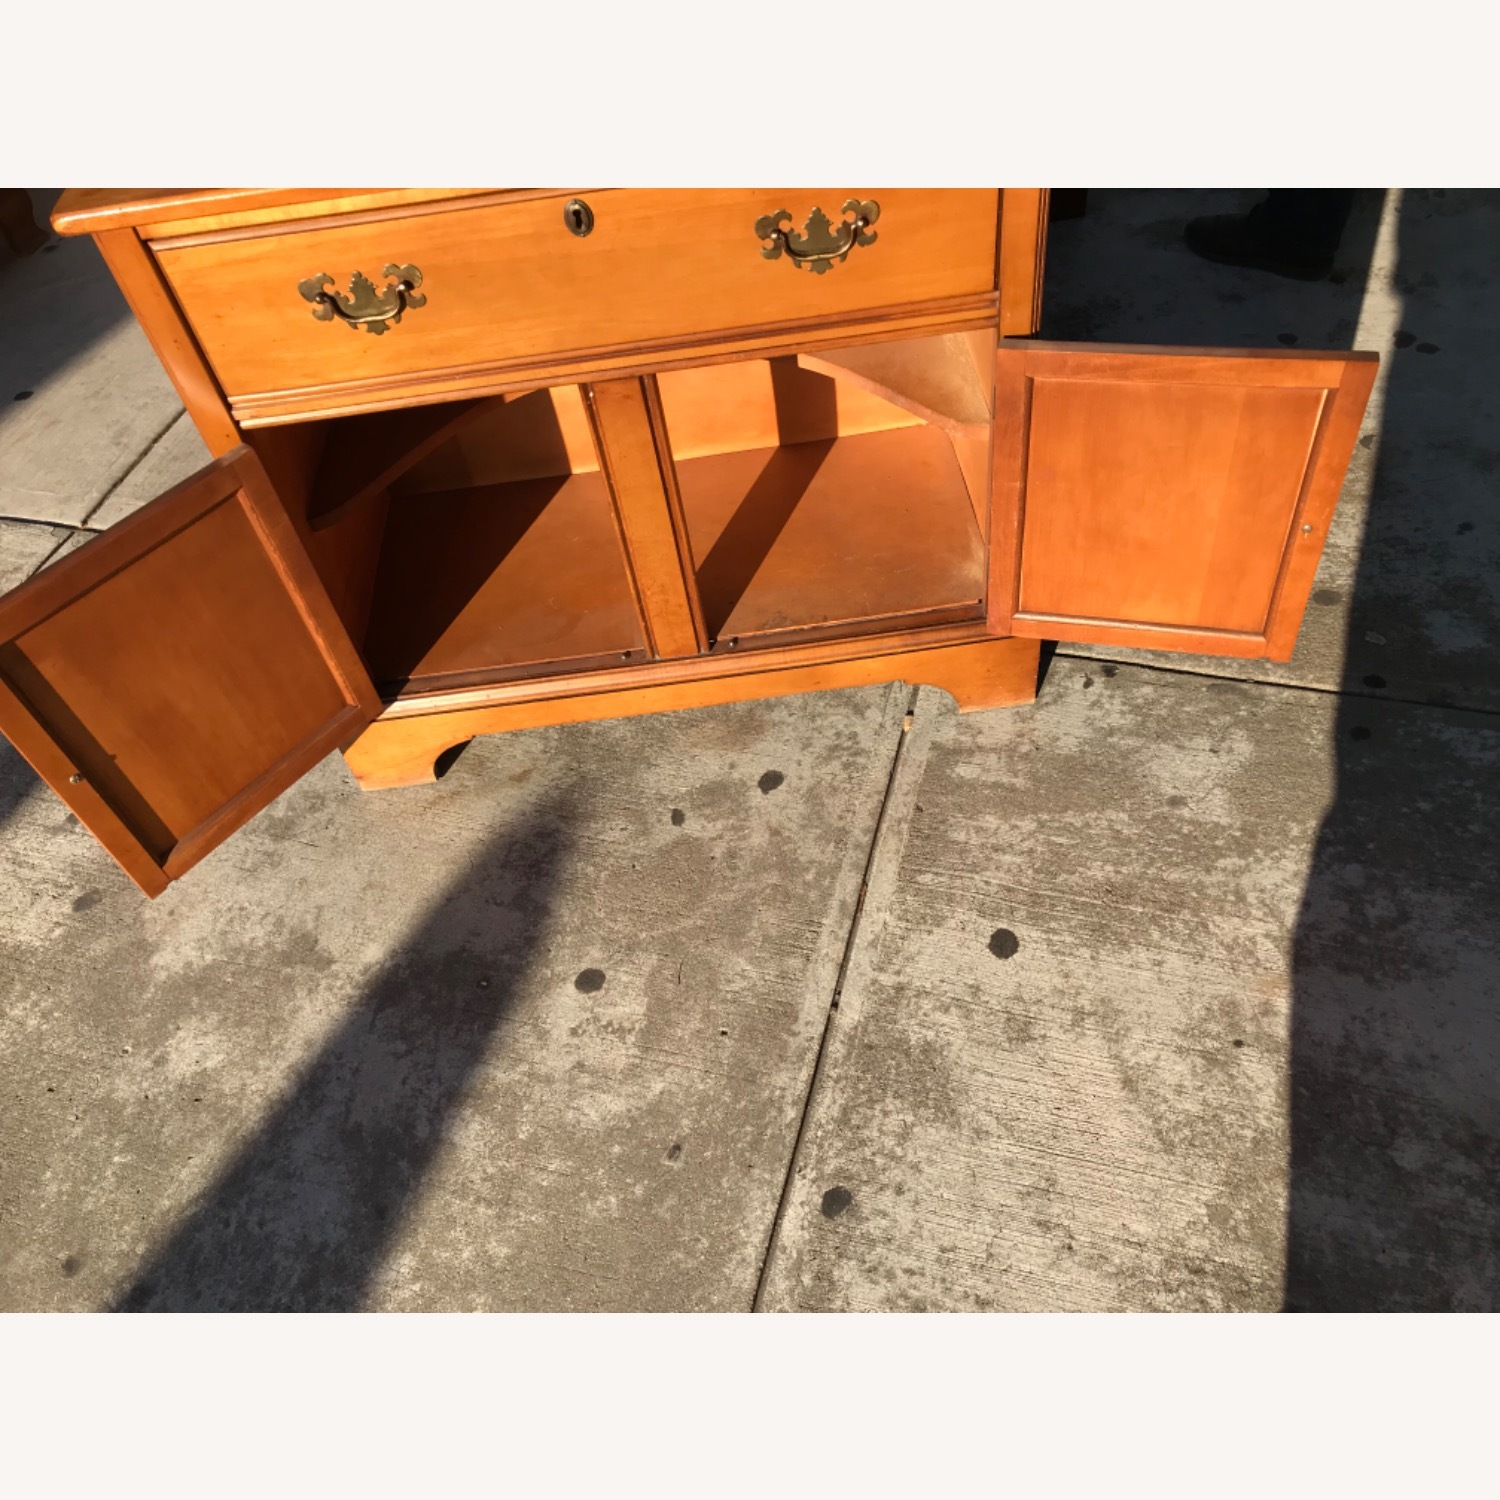 Vintage 1960s Maple Cabinet With Hutch - image-4